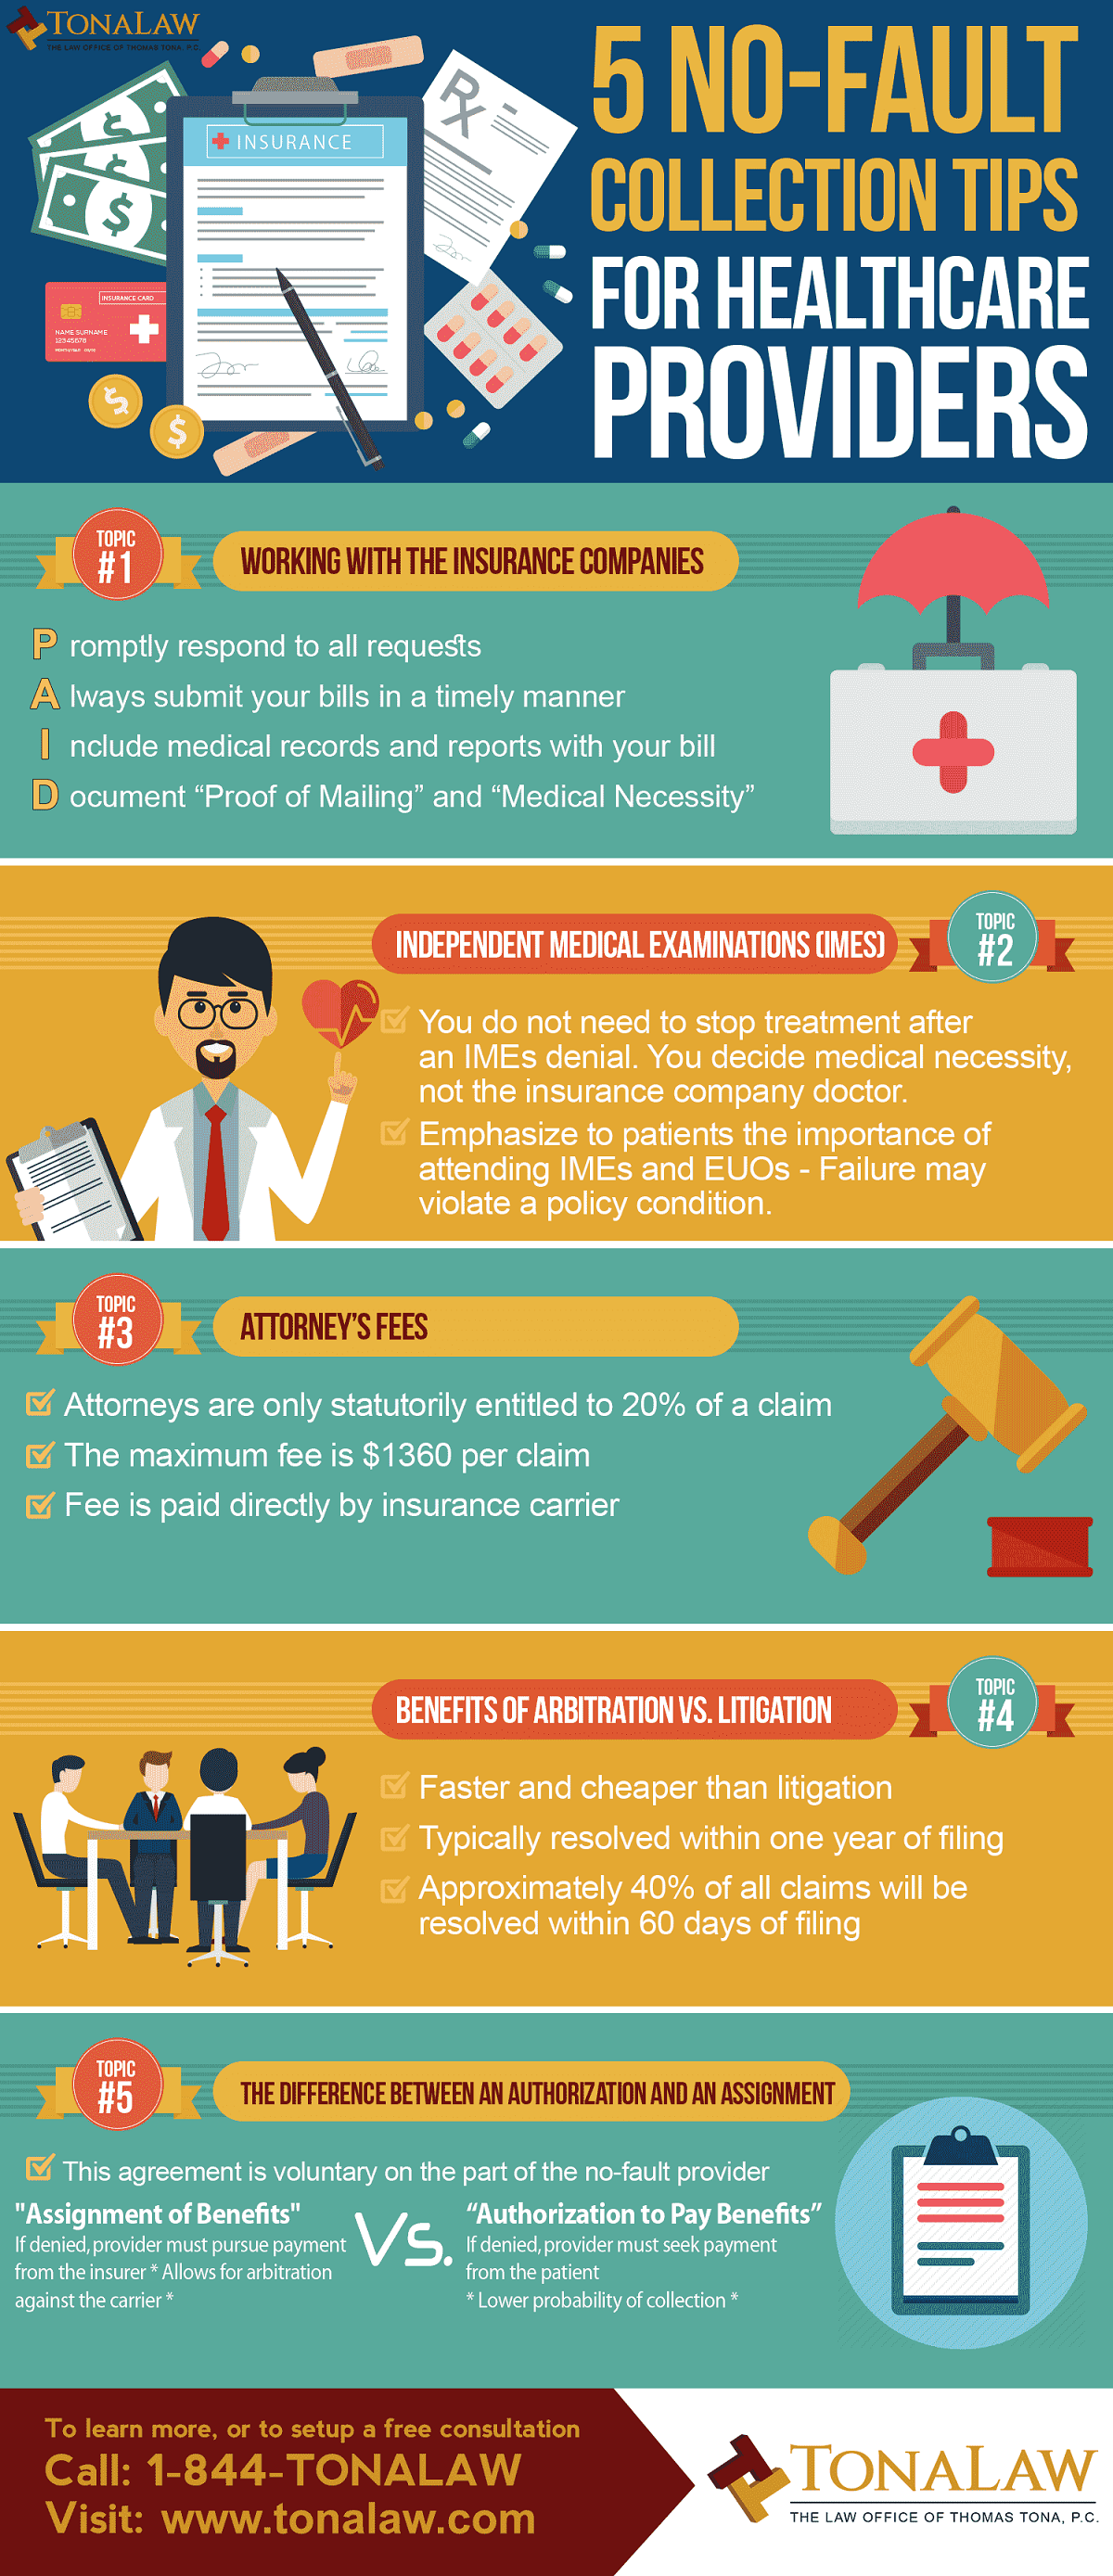 5 No Fault Collection Tips For Healthcare Providers Infographic